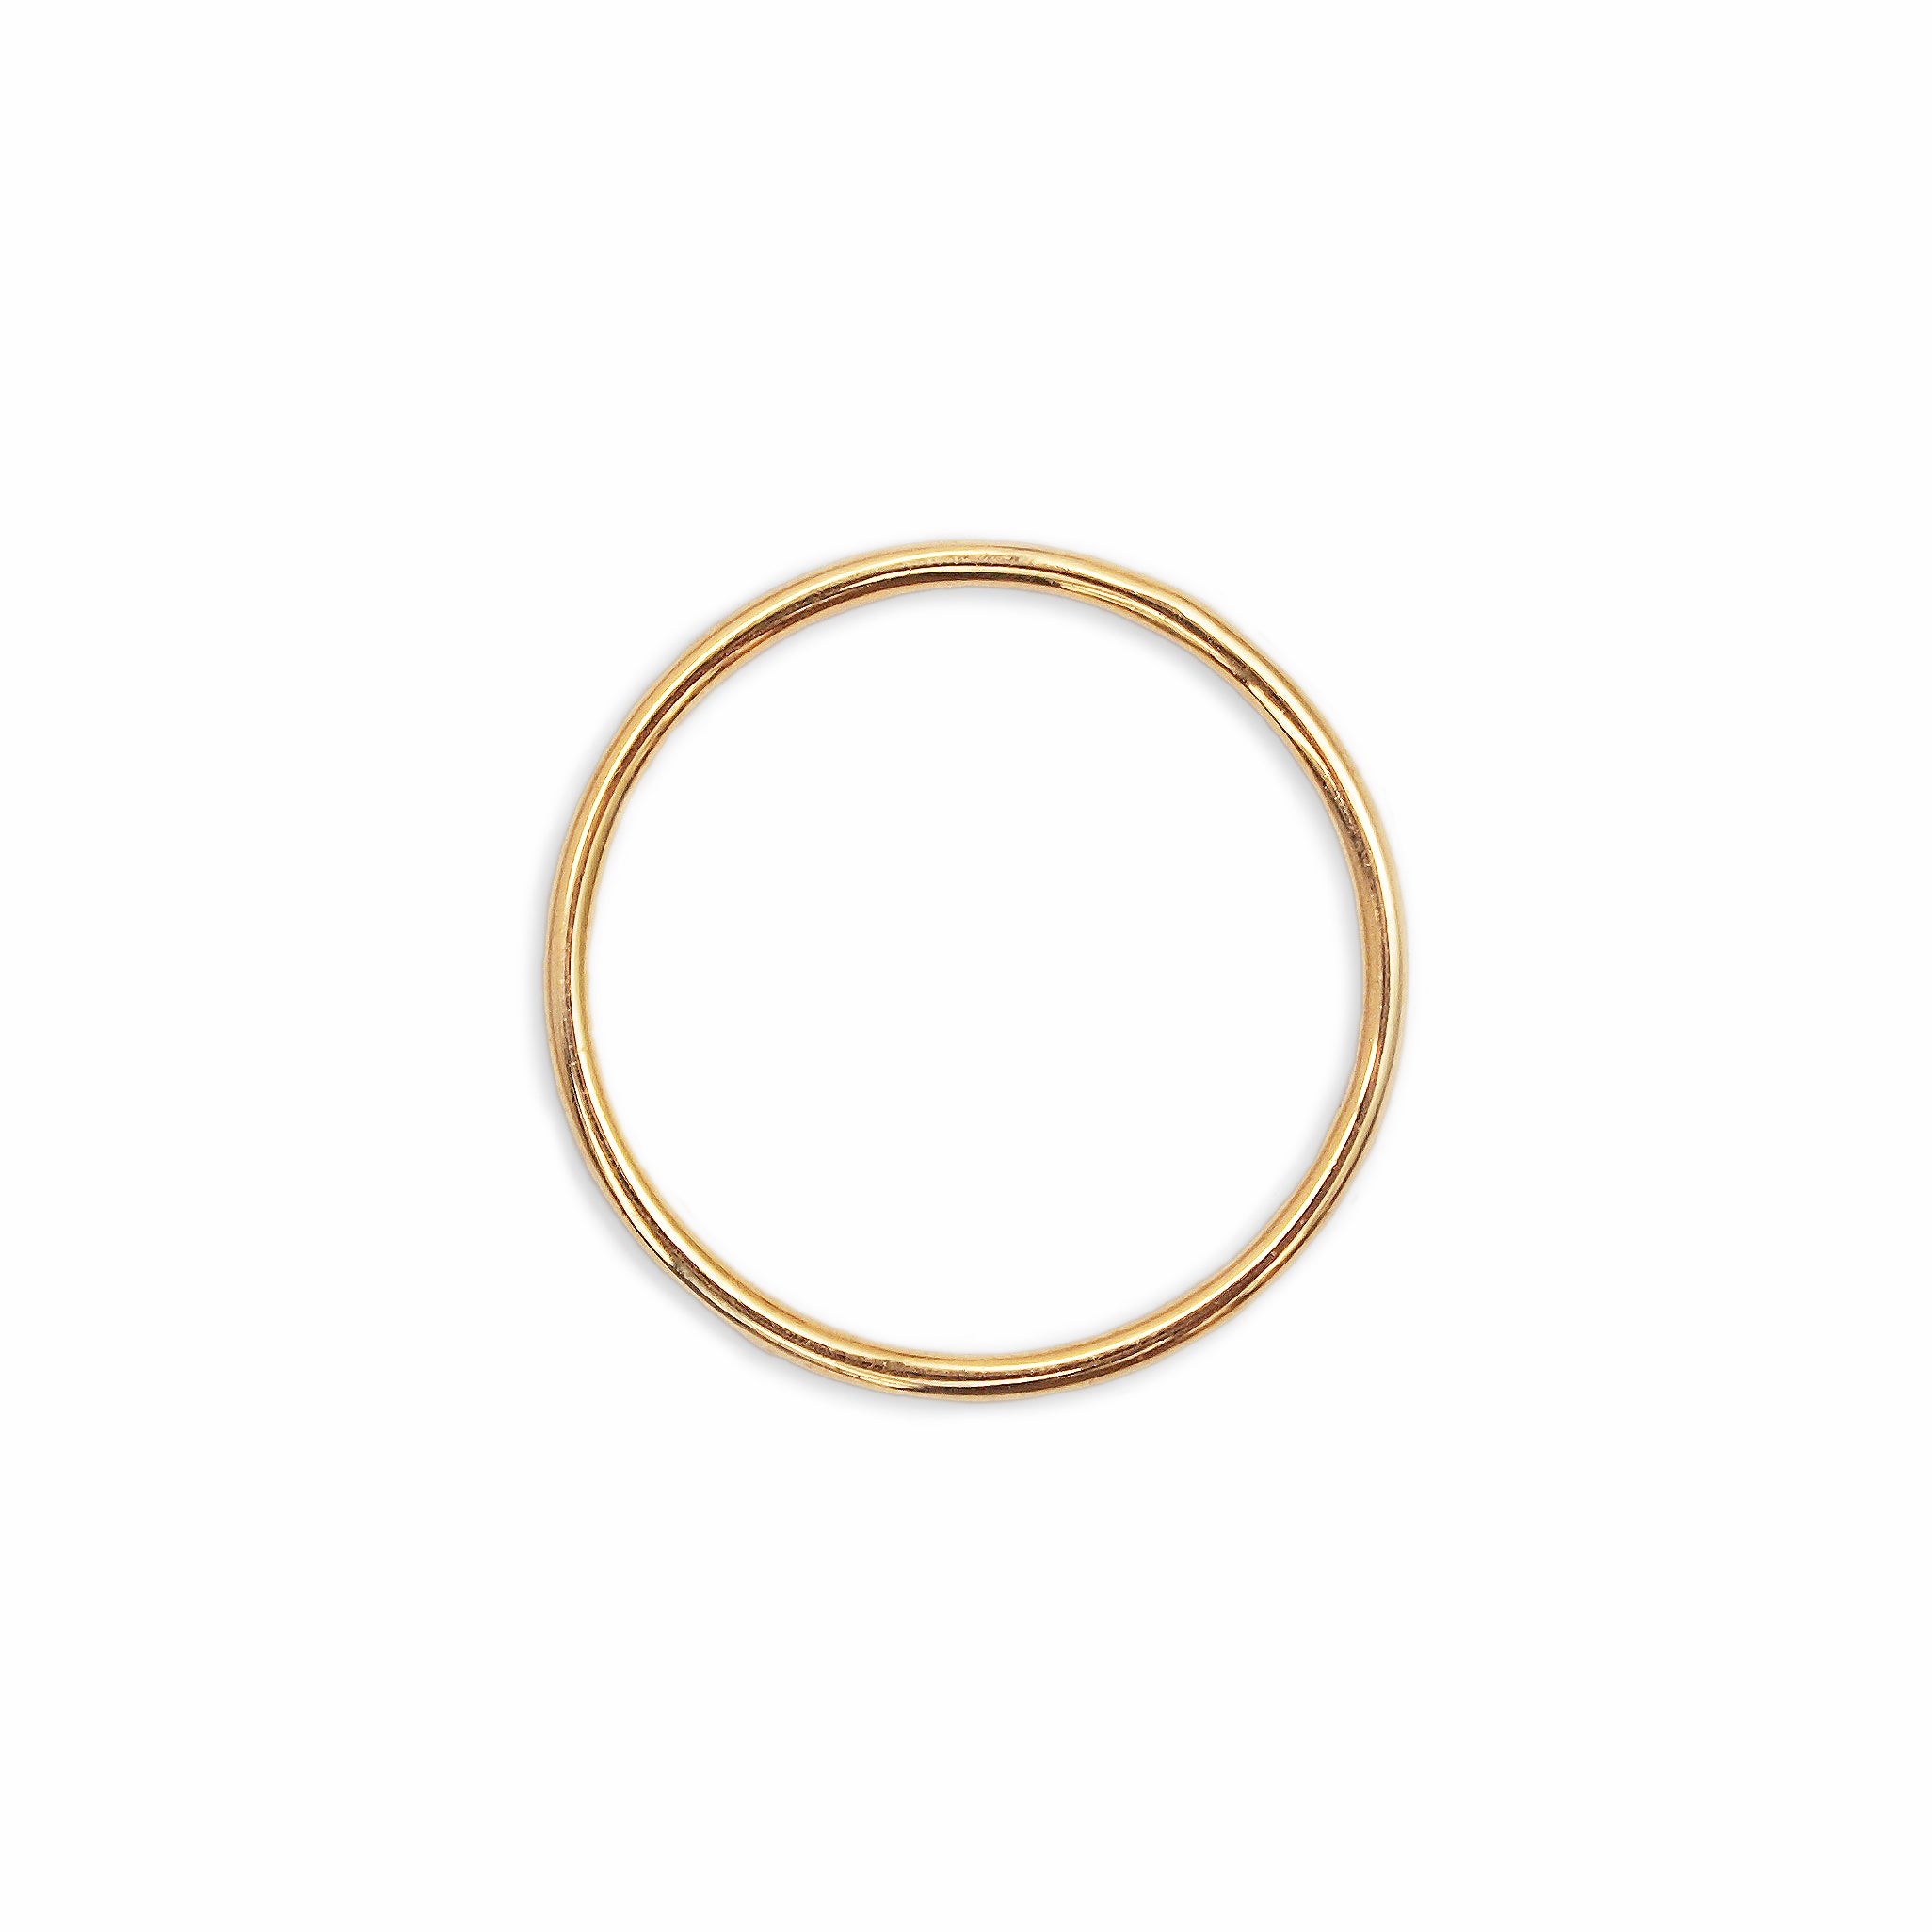 metallic lyst normal ring zoe jewelry goldclear thin gold set chicco bezel in rings product